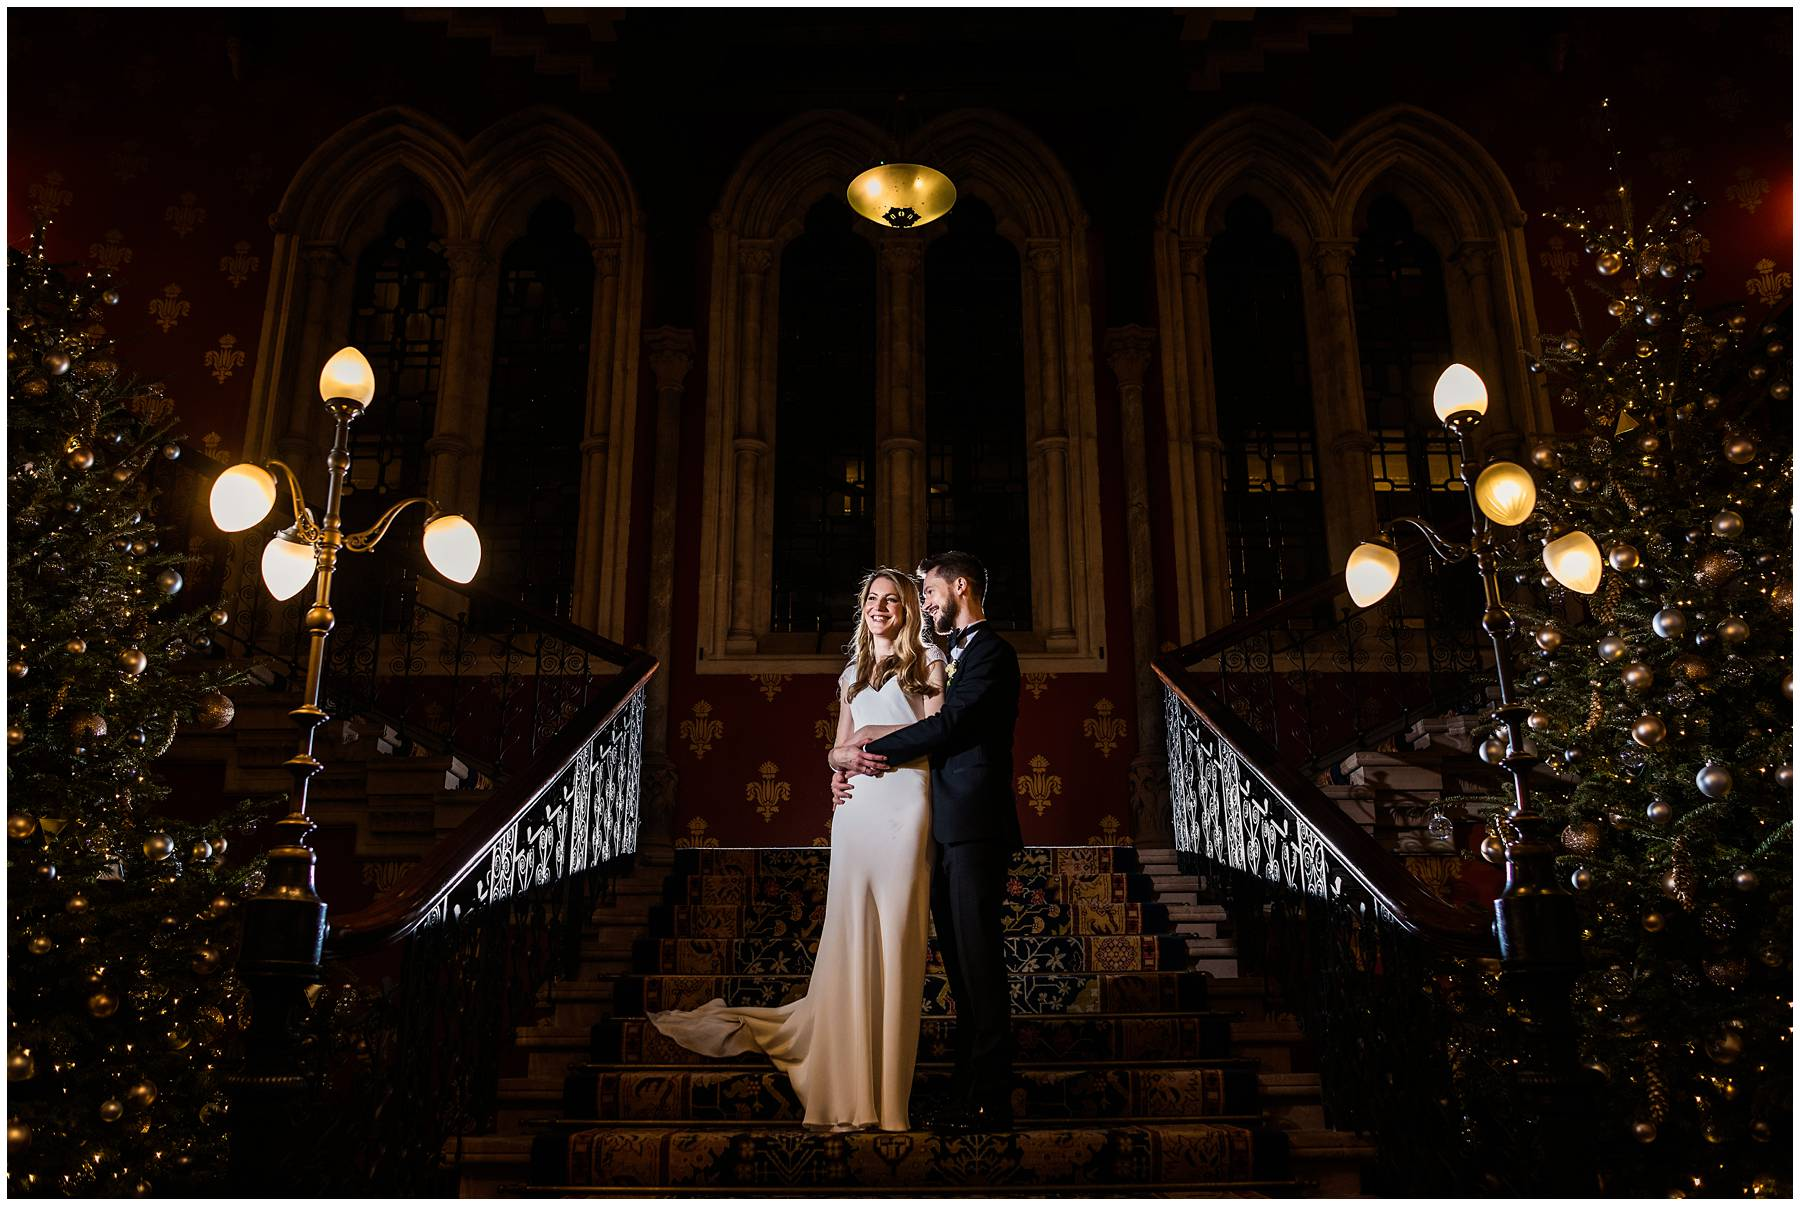 Creative Wedding Photography in London